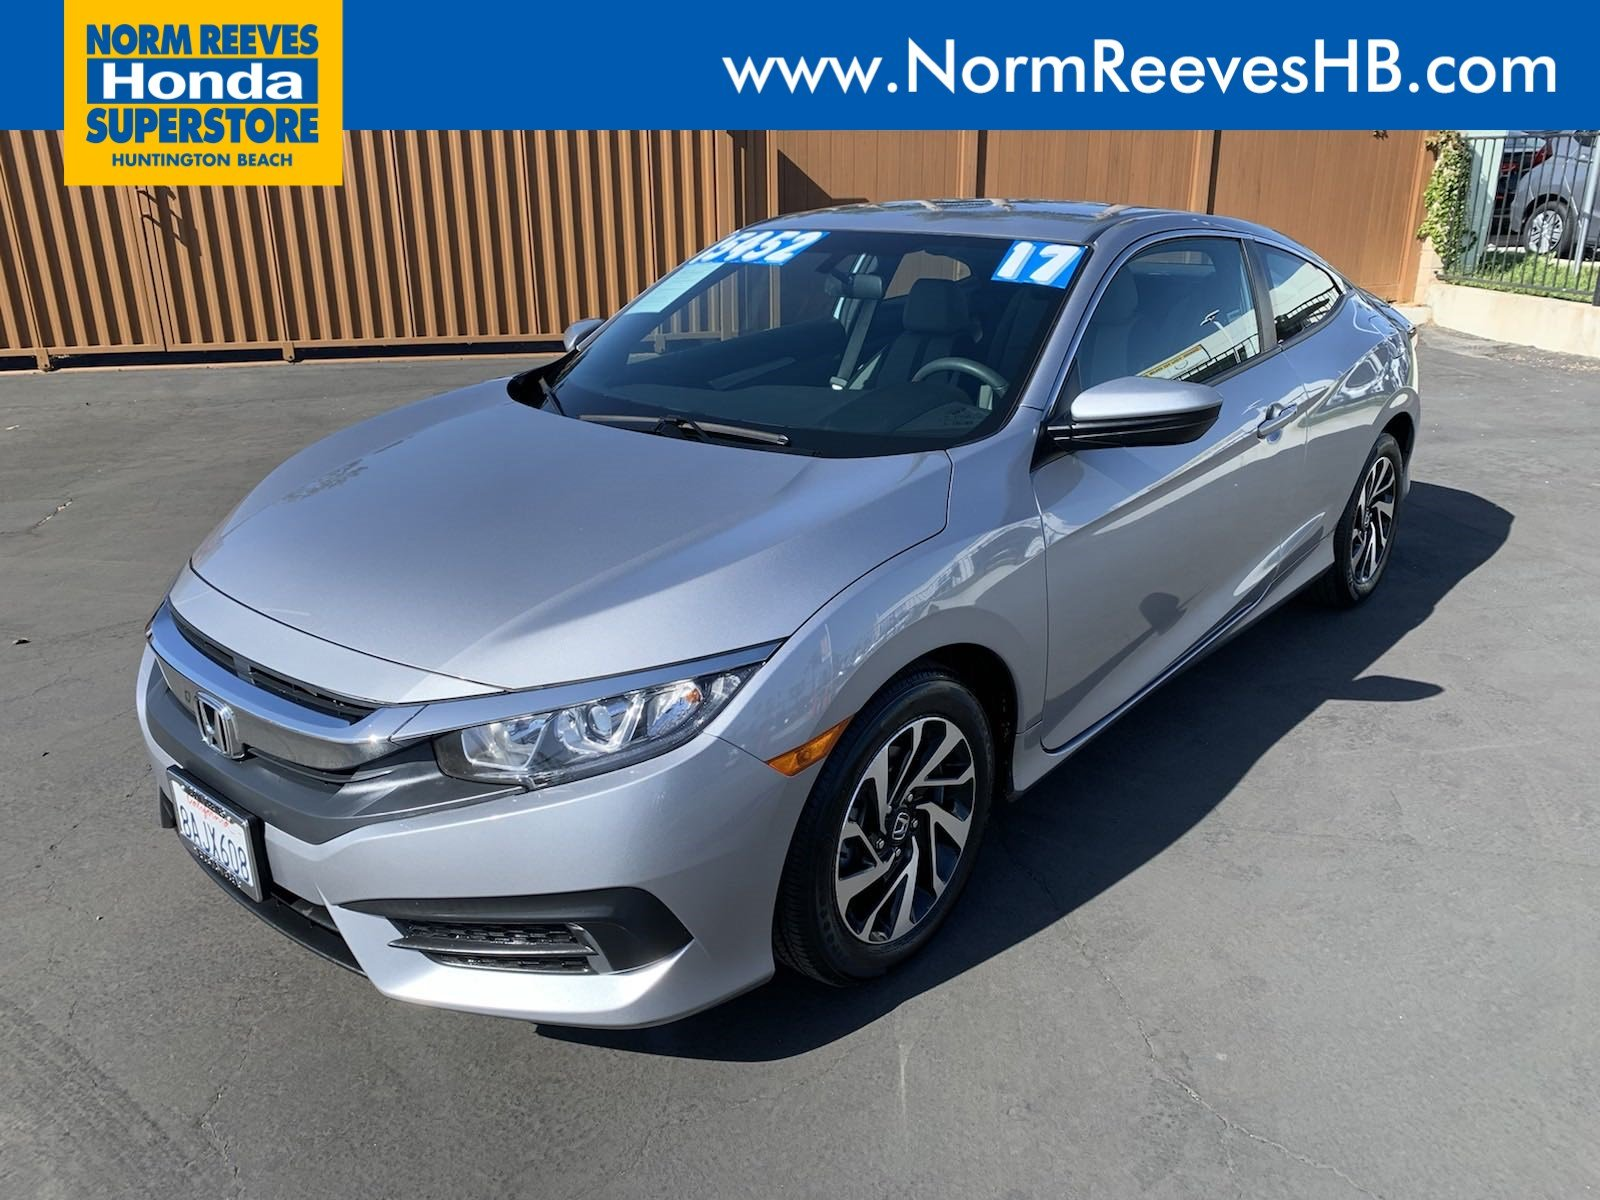 Certified Pre-Owned 2017 Honda Civic Coupe LX